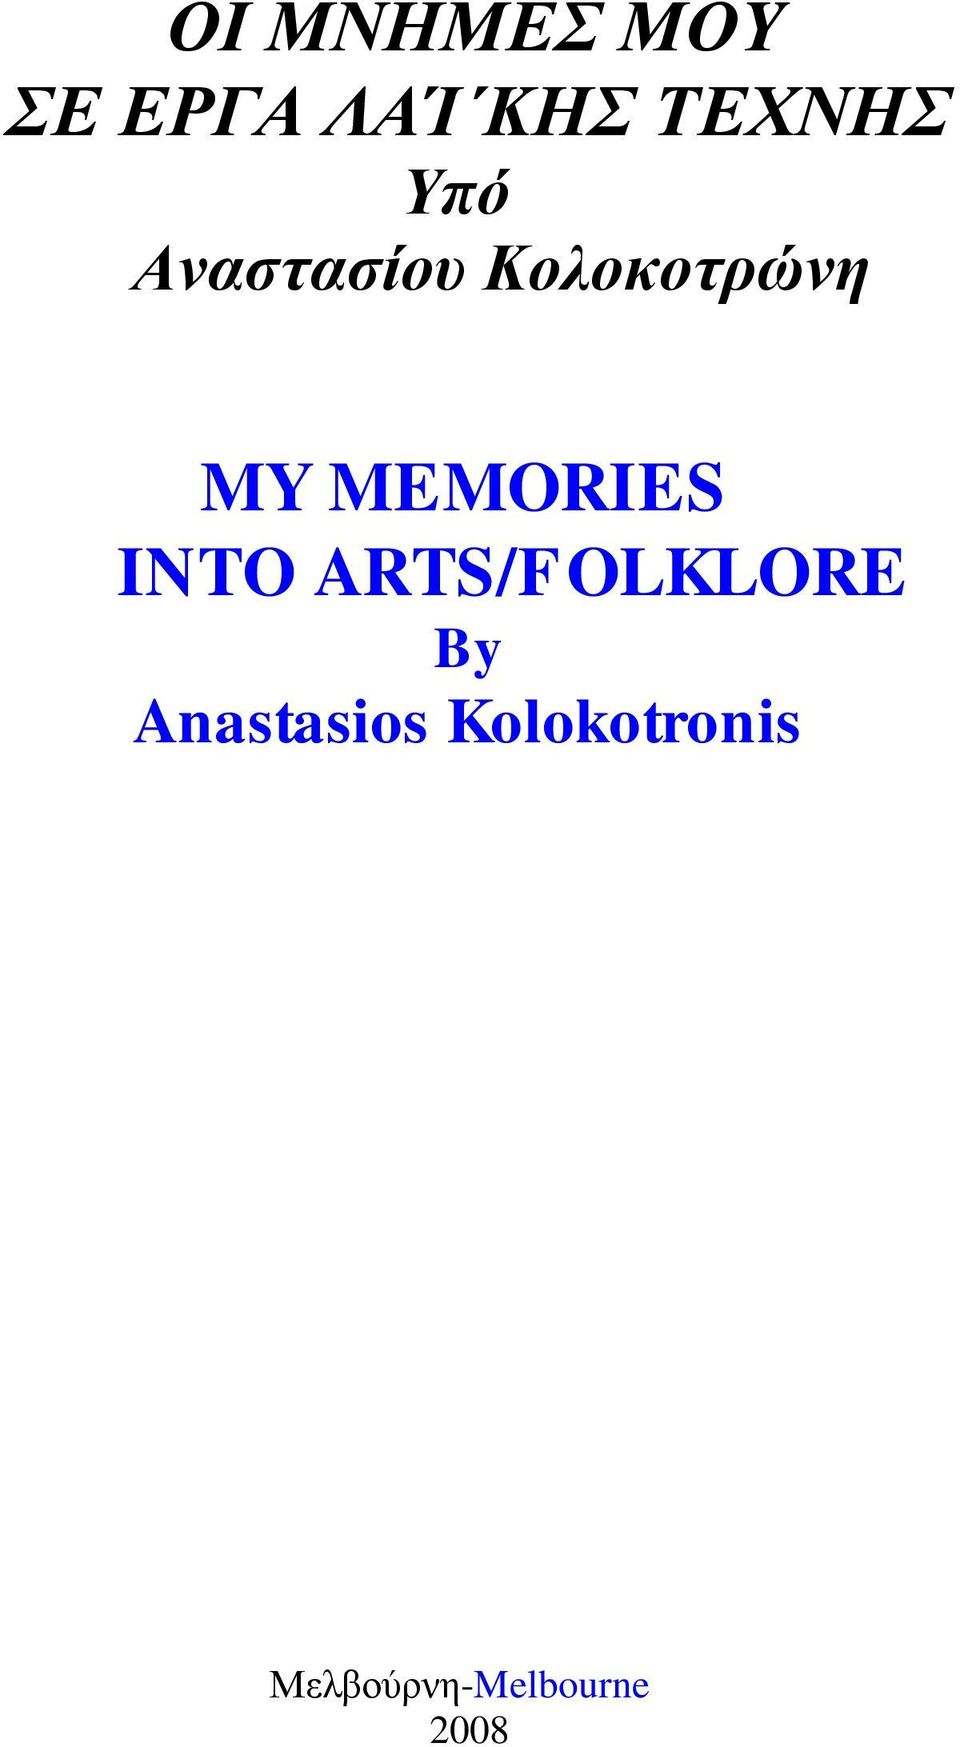 MEMORIES INTO ARTS/FOLKLORE By